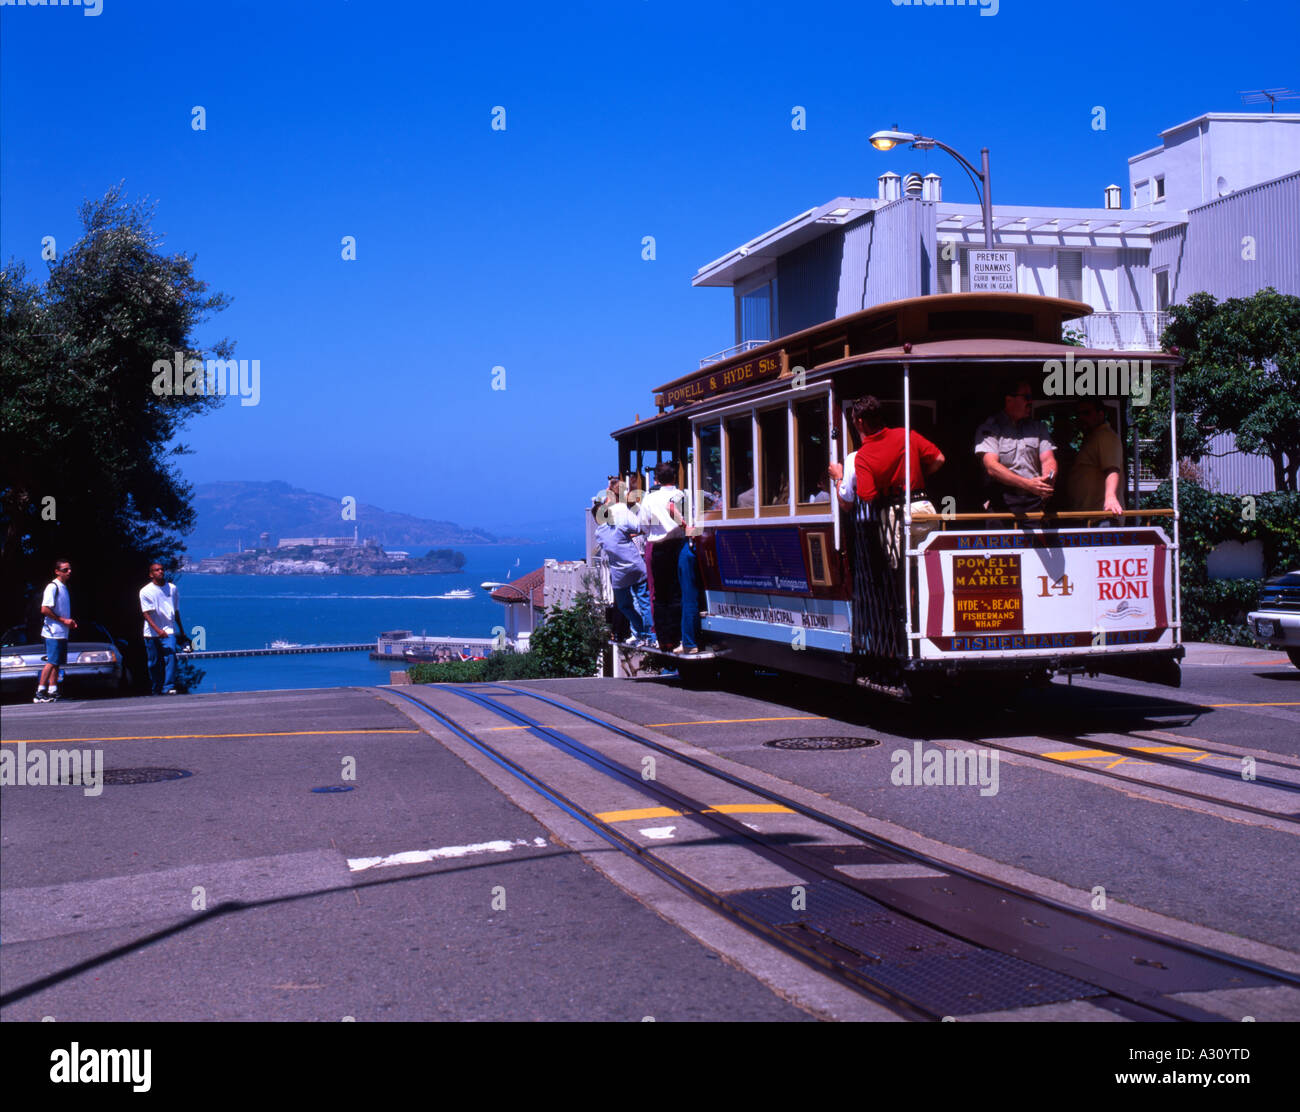 A San Francisco Cable Car Climbs A Steep Hill Overlooking